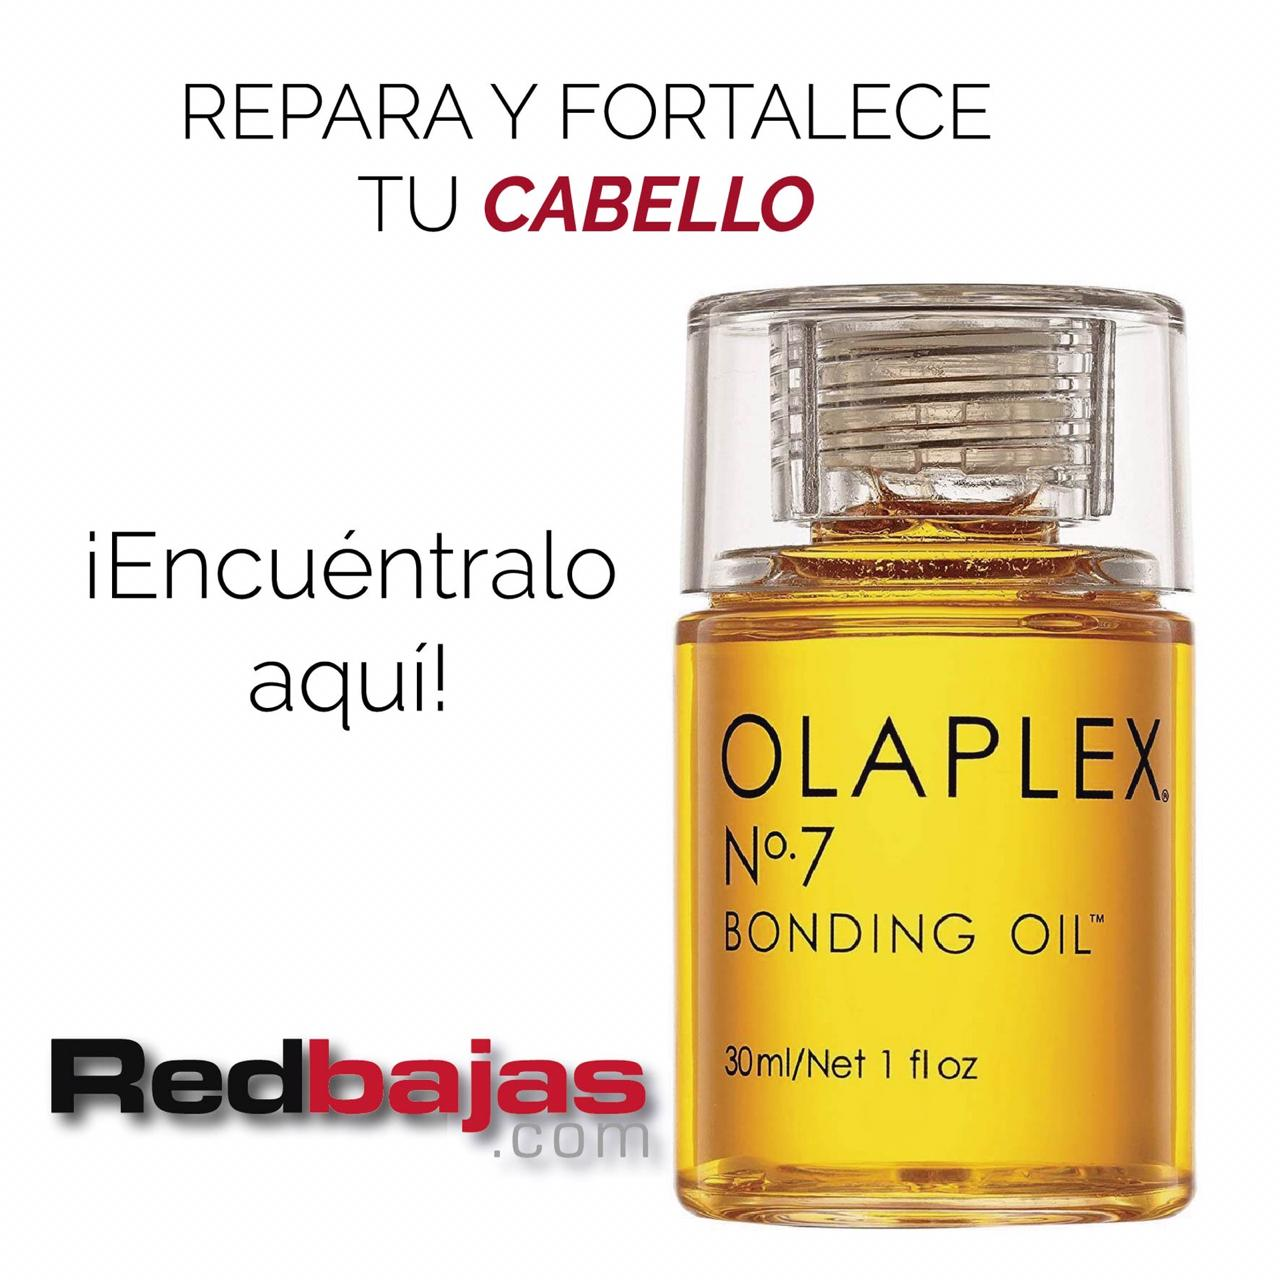 Olaplex N° 7 Bonding Oil